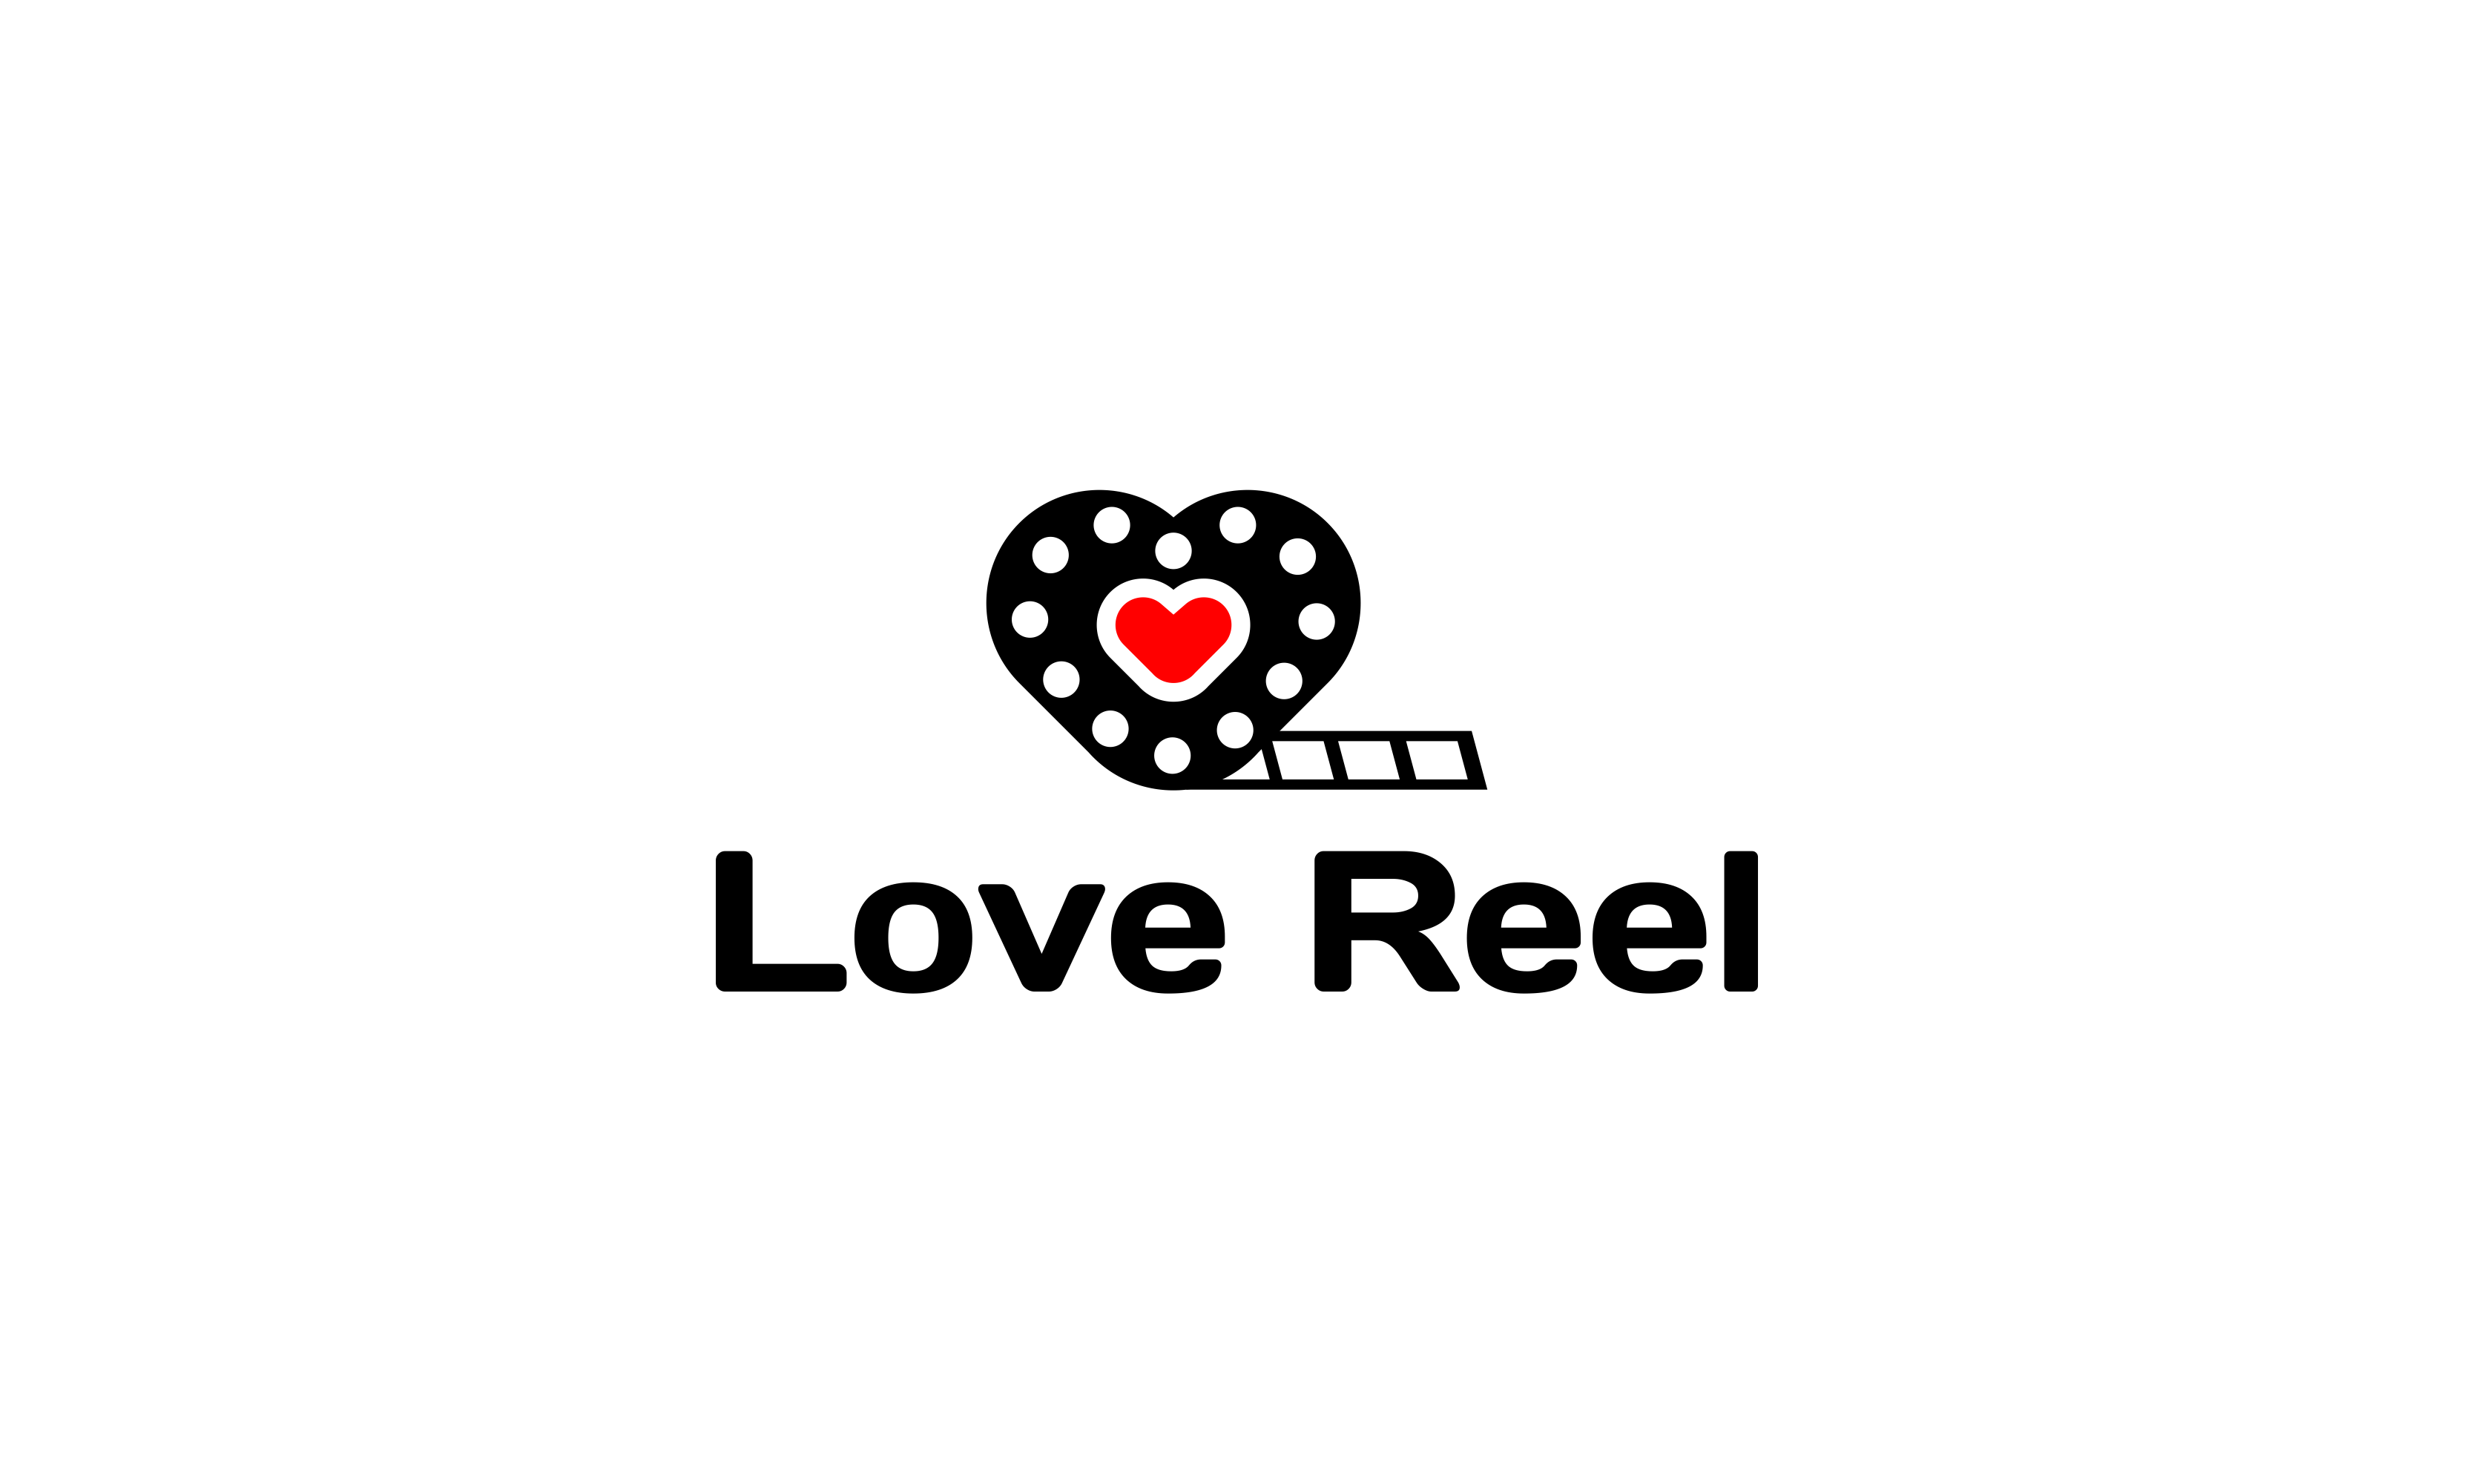 Lovereel - Possible domain name for sale